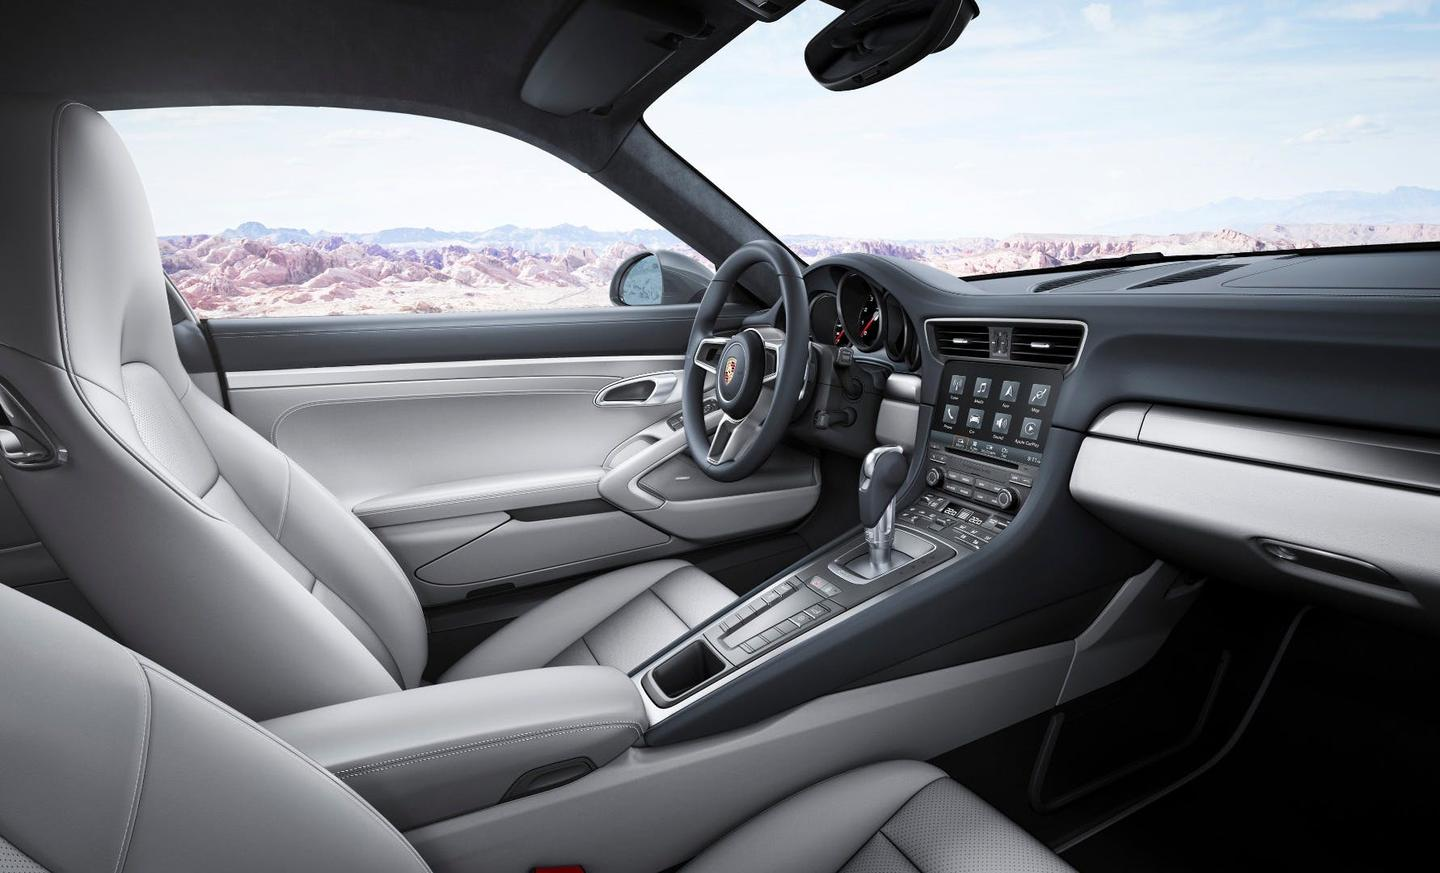 The Porsche Connect infotainment system has been treated to a wider range of functionality